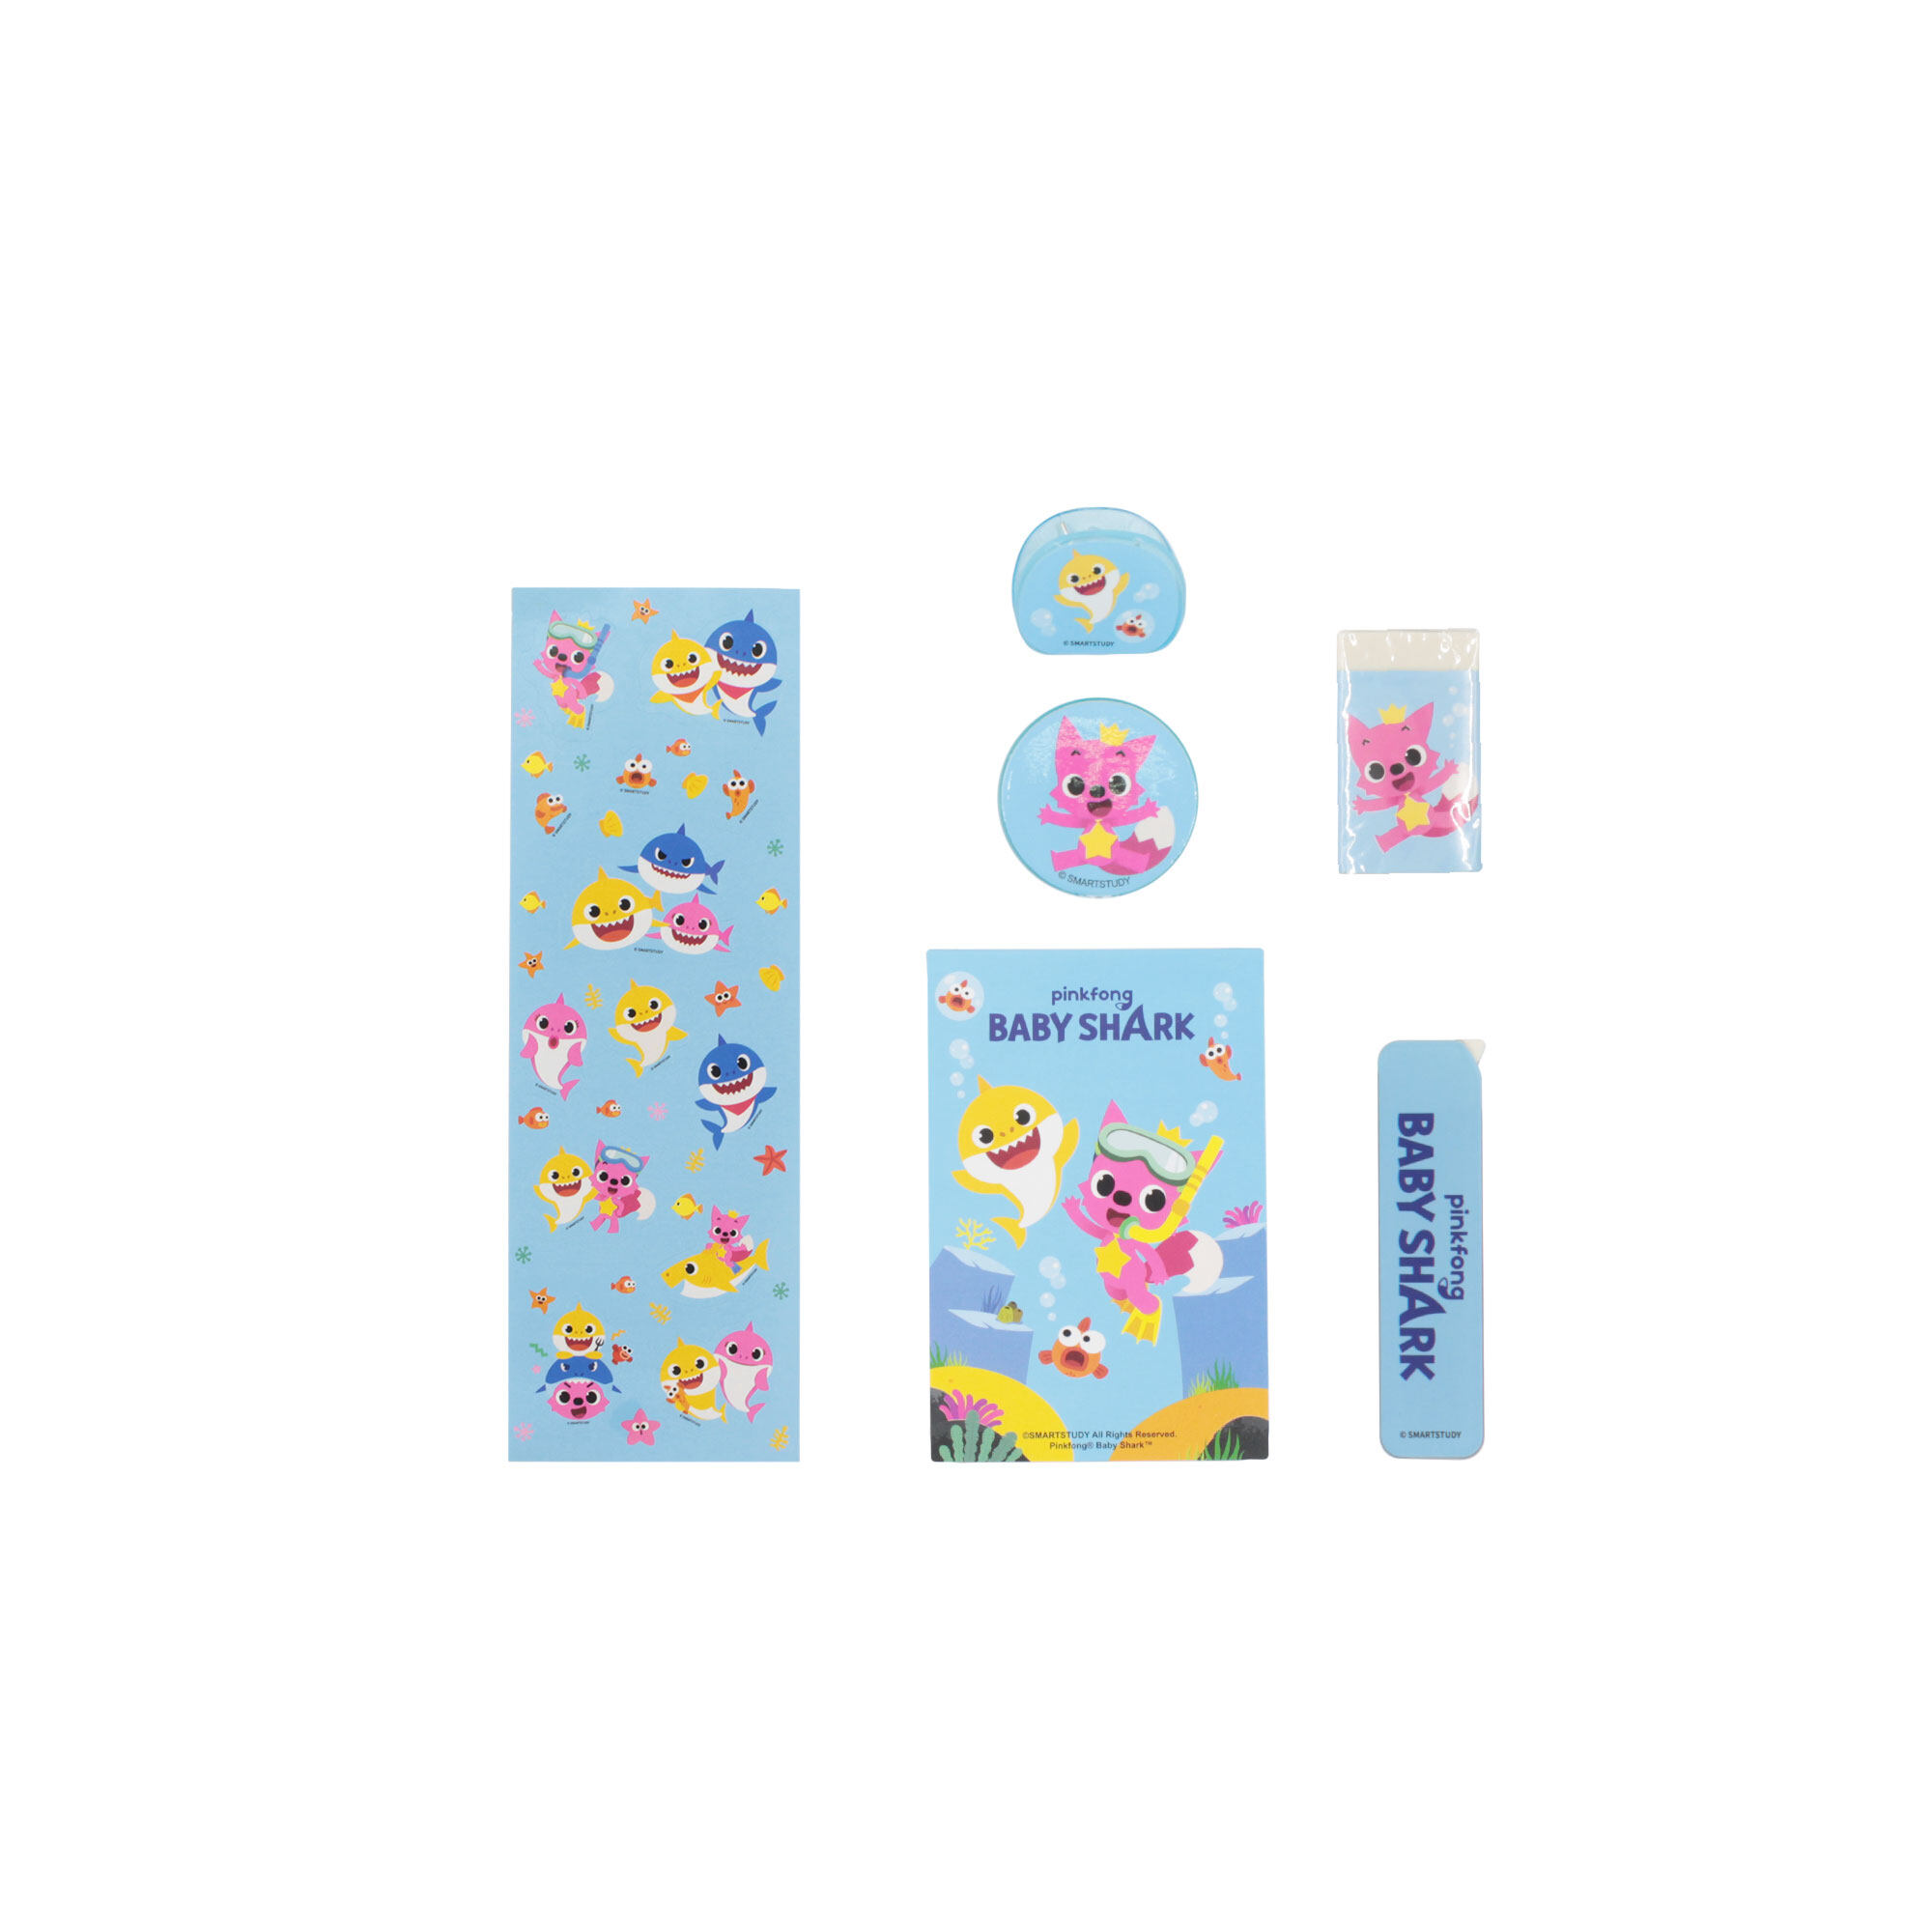 Pinkfong Baby Shark Children All In 1 Big Stationery Value Pack With 2 Pencils, 2 Mechanical Pencil, Ruler, Sharpener Eraser,Correction Tape Mini Notepad and Pencil Bag